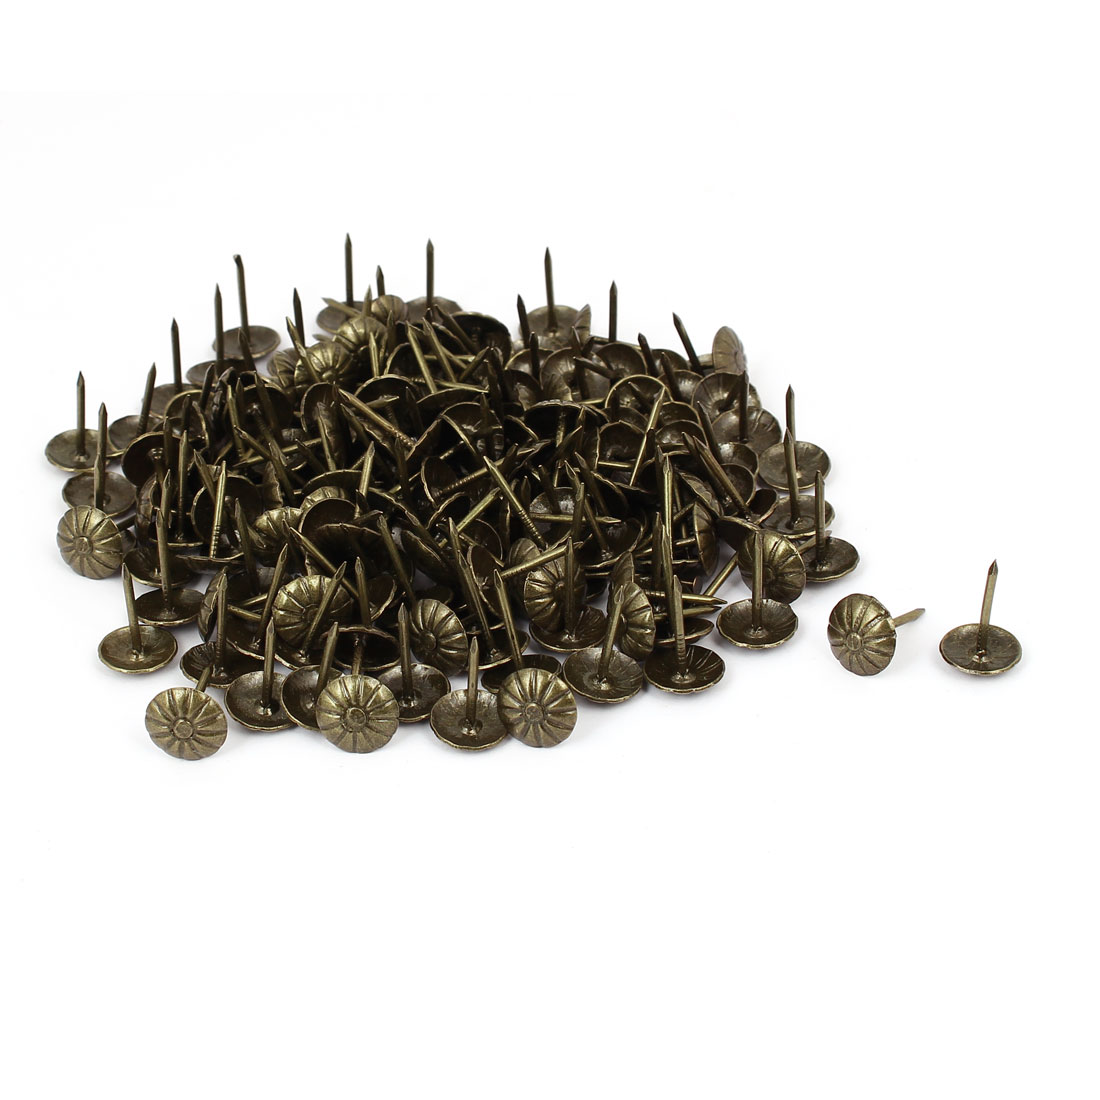 "Unique Bargains 7/16"" Dia Daisy Head Thumbtack Upholstery Decorative Nail Thumb Tack 150PCS"